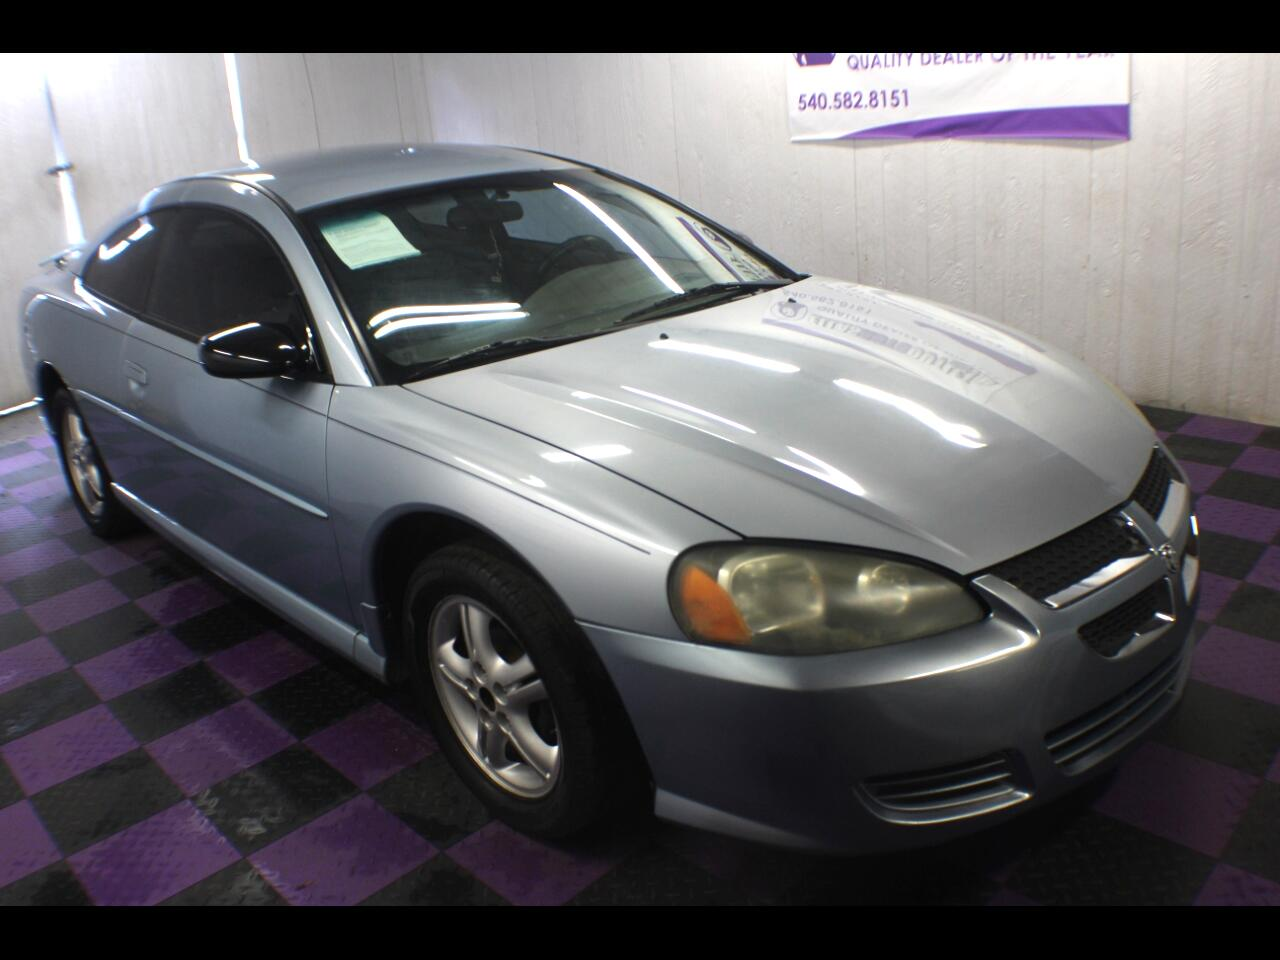 Used 2004 Dodge Stratus Sxt Coupe For Sale In Thornburg Va